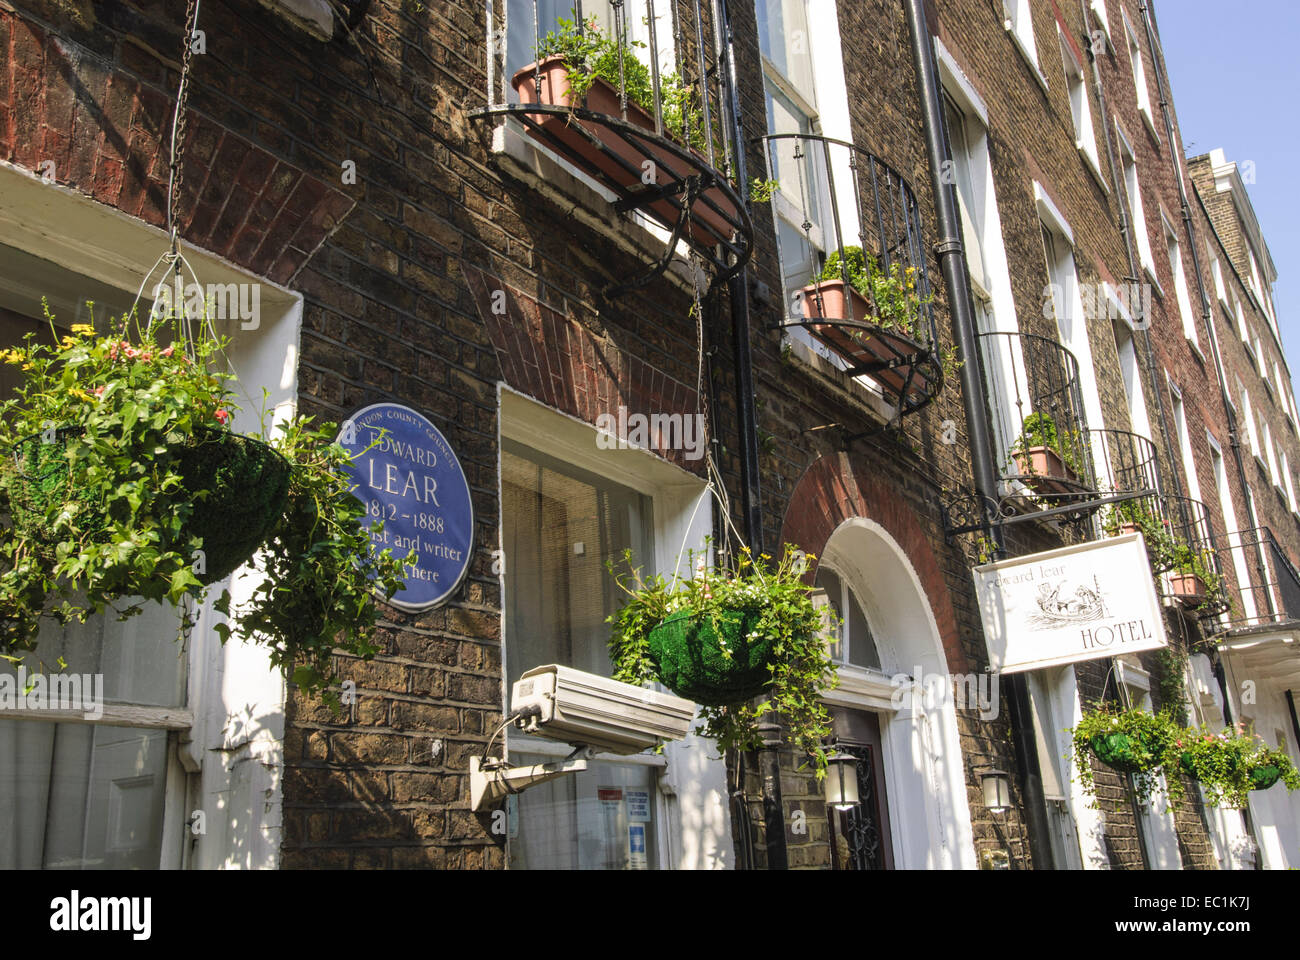 Edward Lear blue plaque, home of the poet at 30 Seymour Street, Marylebone, London W1, City of Westminster Edward - Stock Image